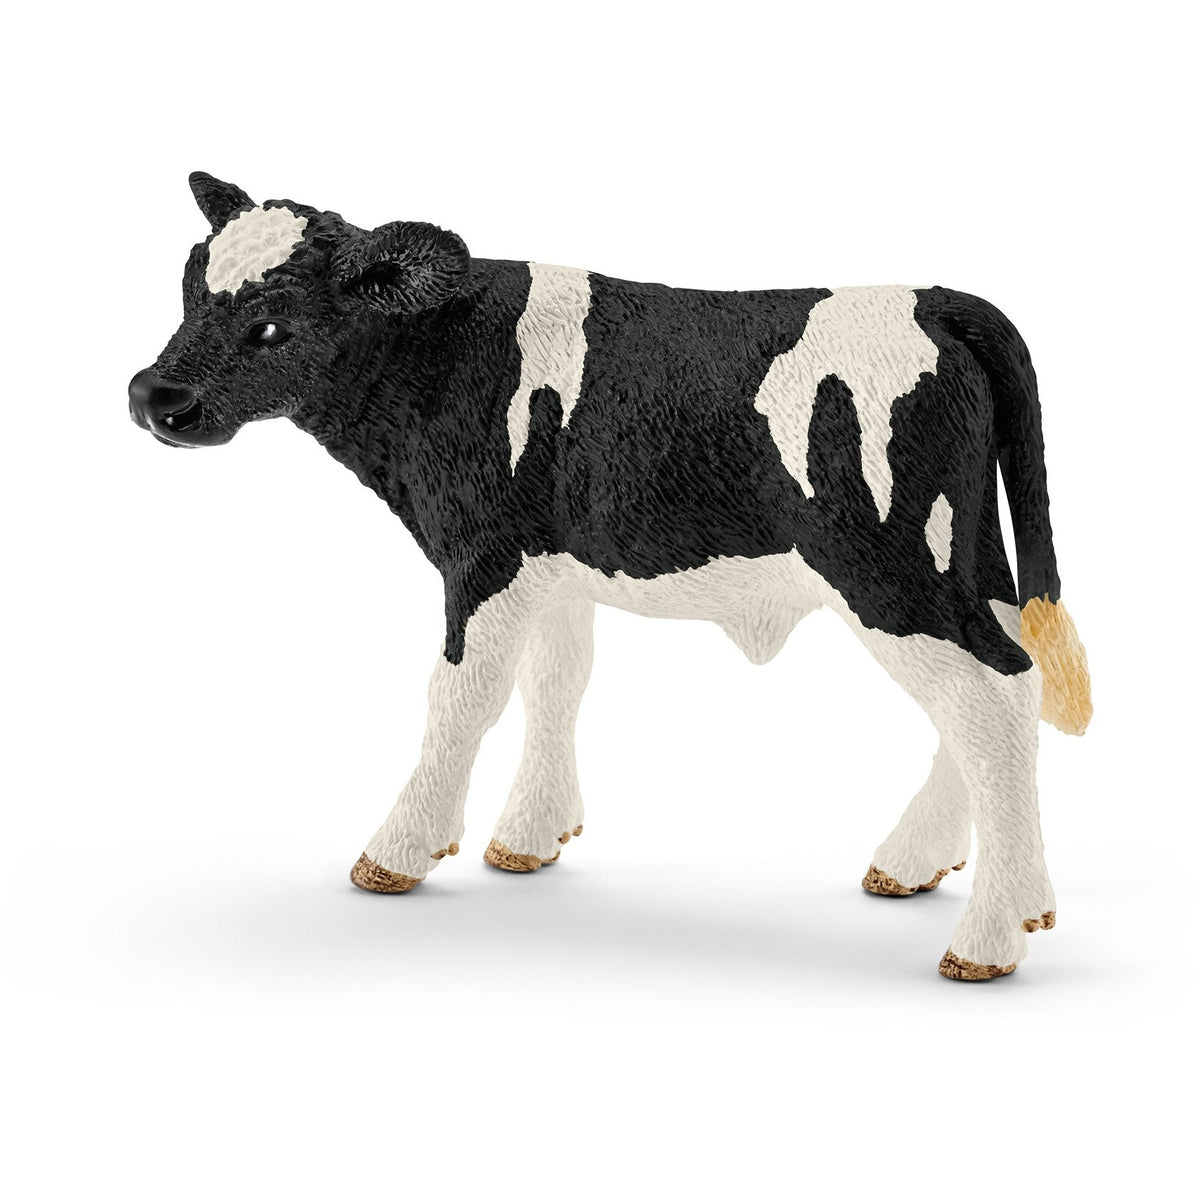 Schleich Farm World Holstein Calf 13798 canada